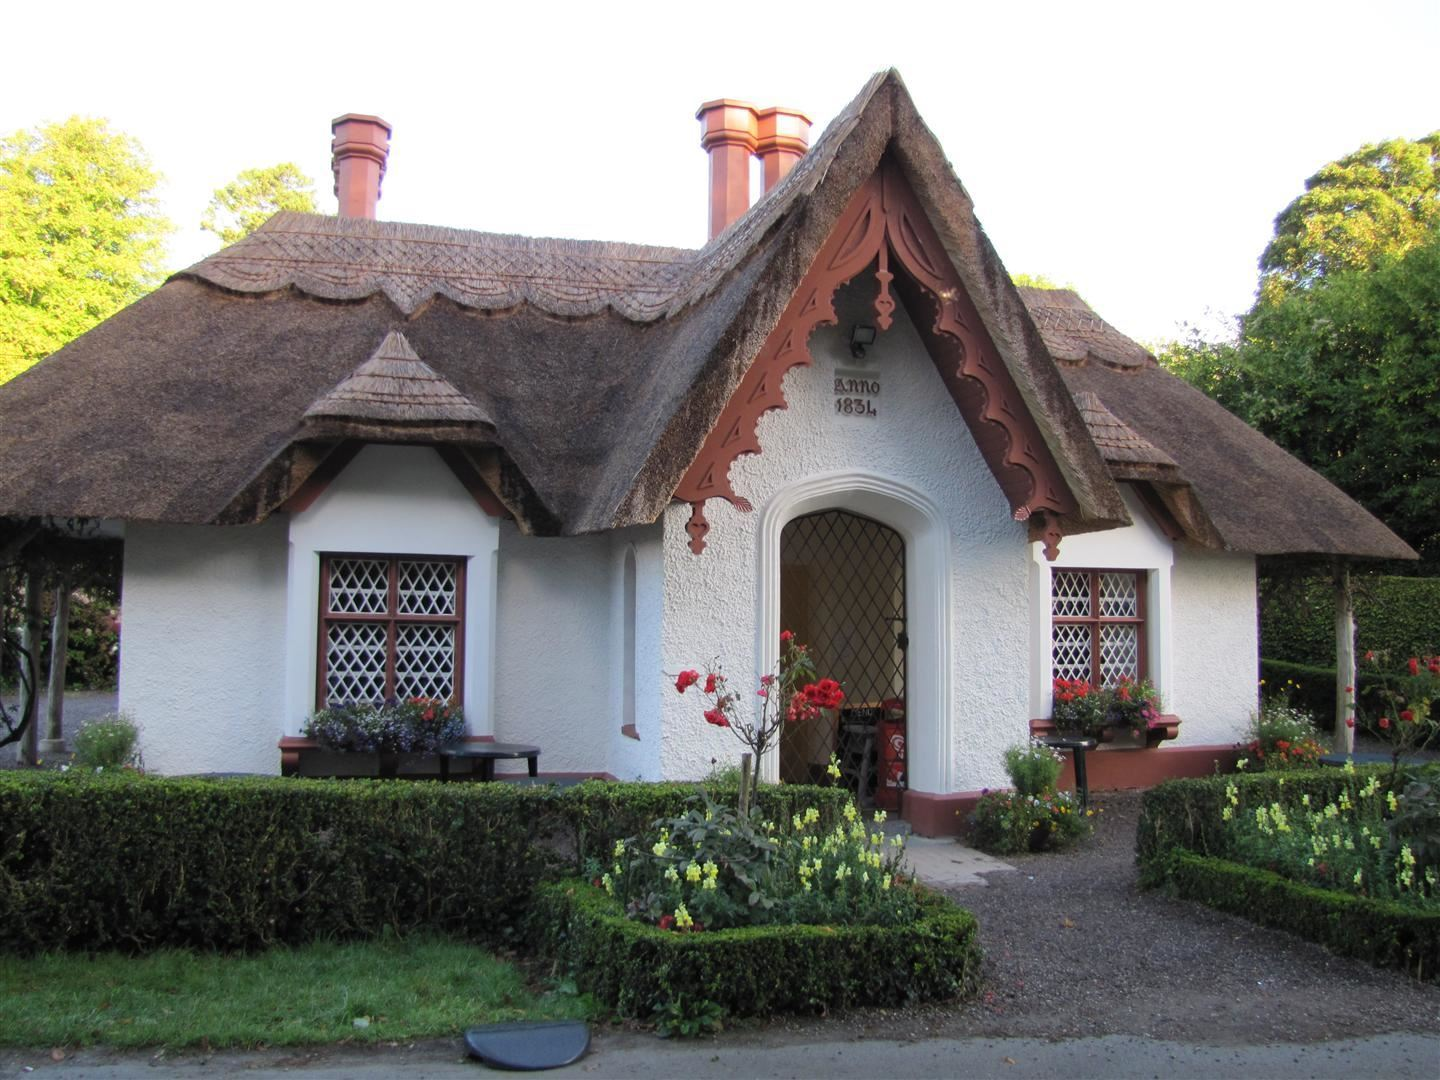 Thatched cottage killarney national park killarney county kerry ireland thatch cottages - The thatched cottage ...